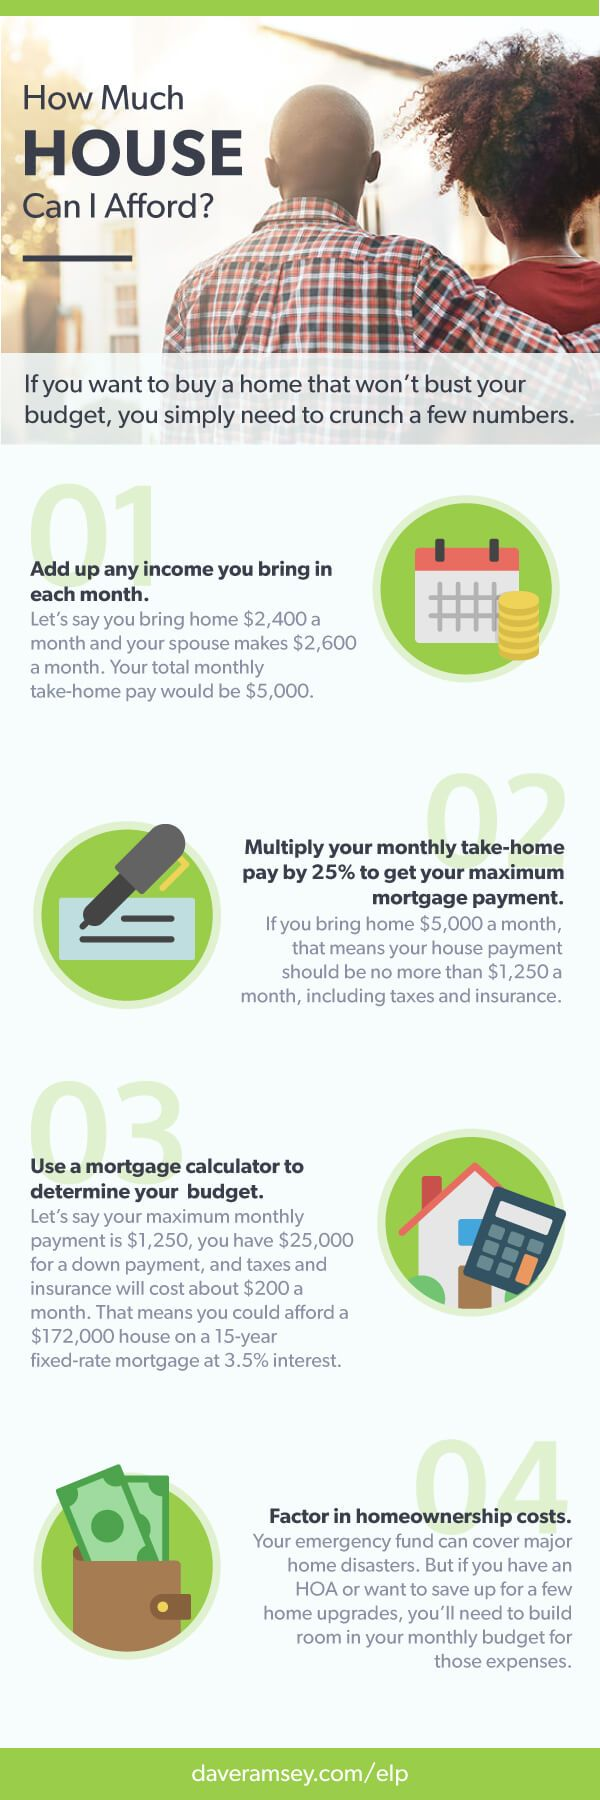 How Much House Can I Afford Home Buying Tips Home Buying Dave